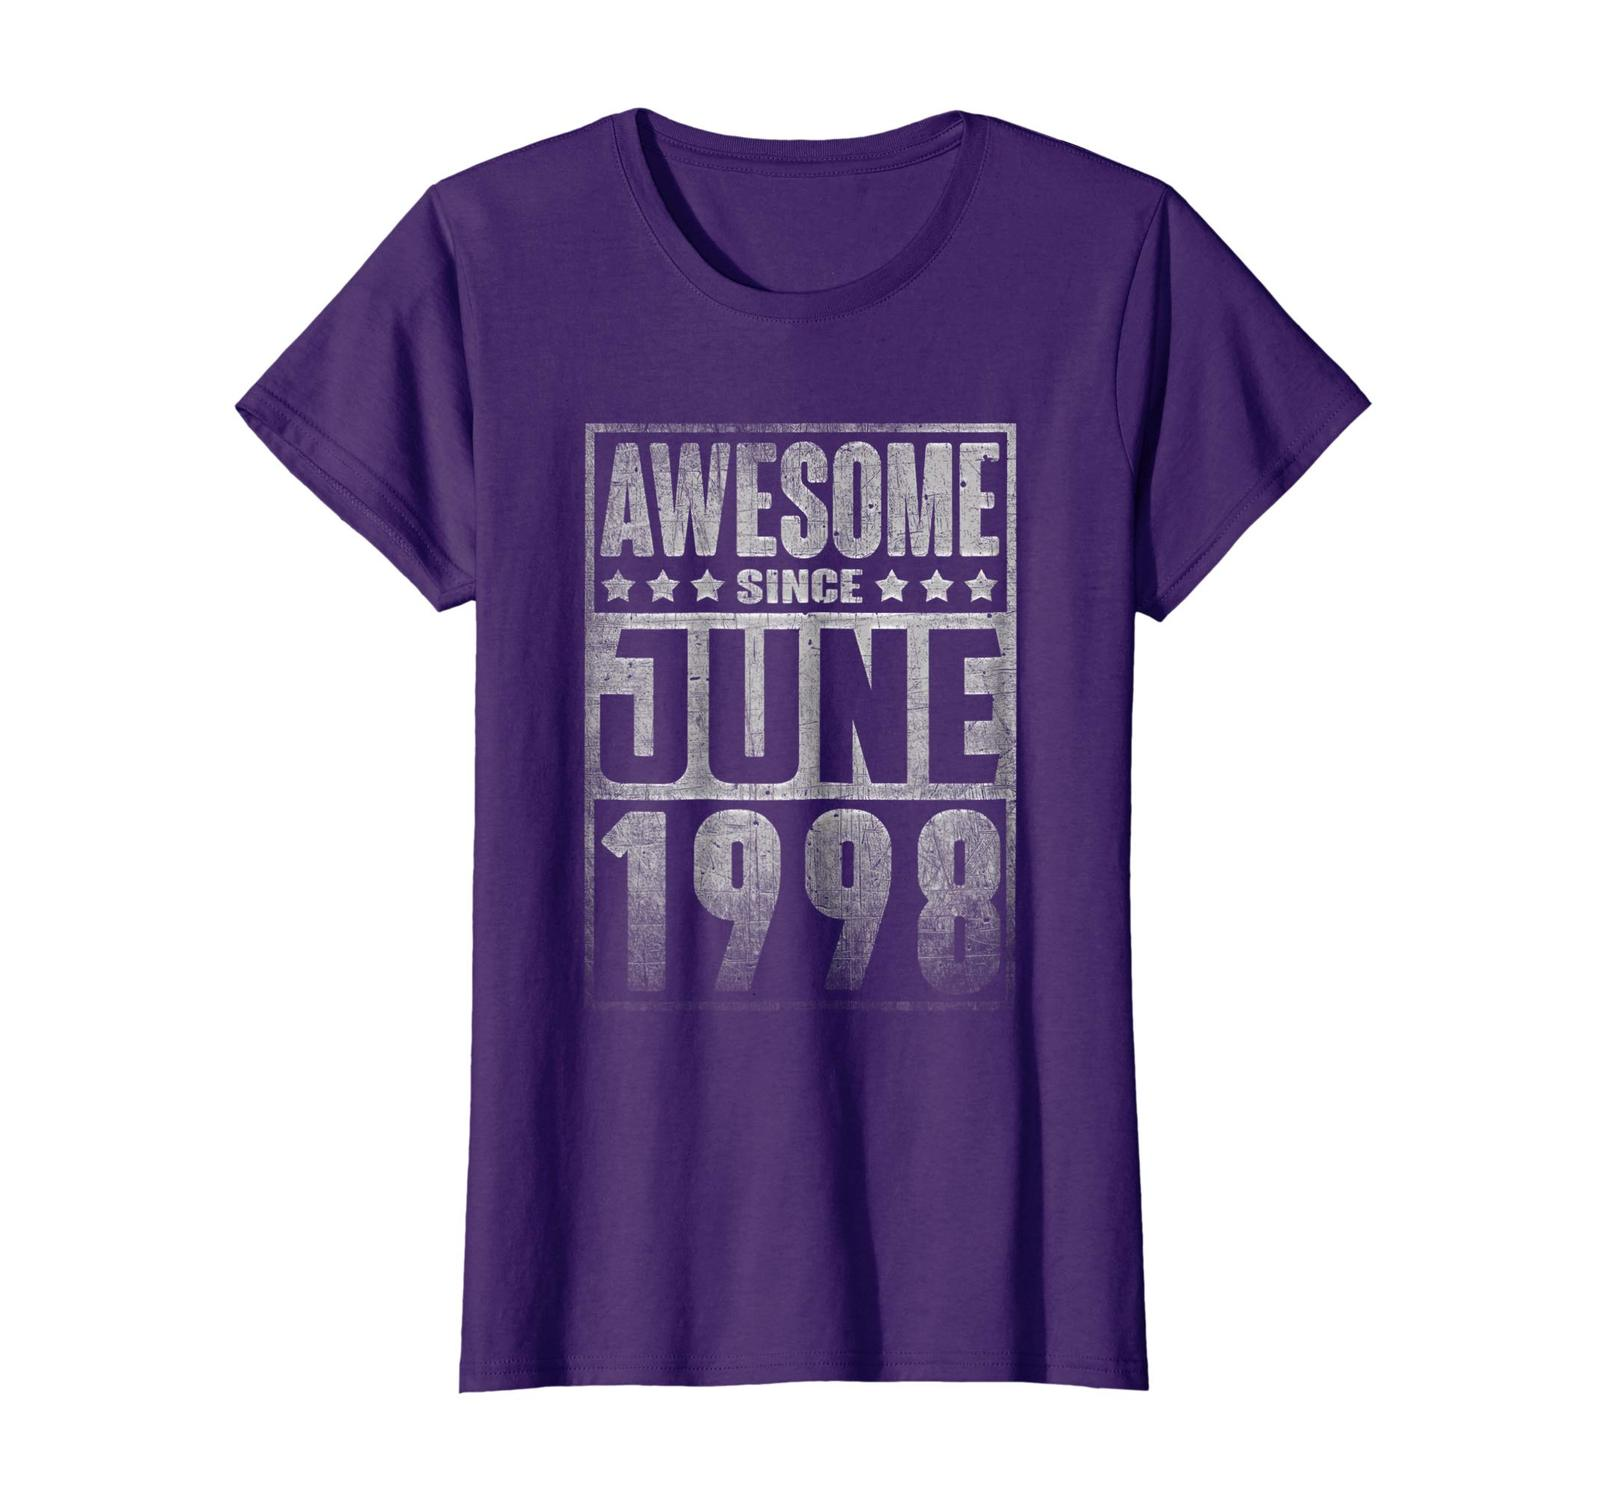 Uncle Shirts -   Awesome Since JUNE 1998 Straight Outta 20 Years Old Being Wowen image 4